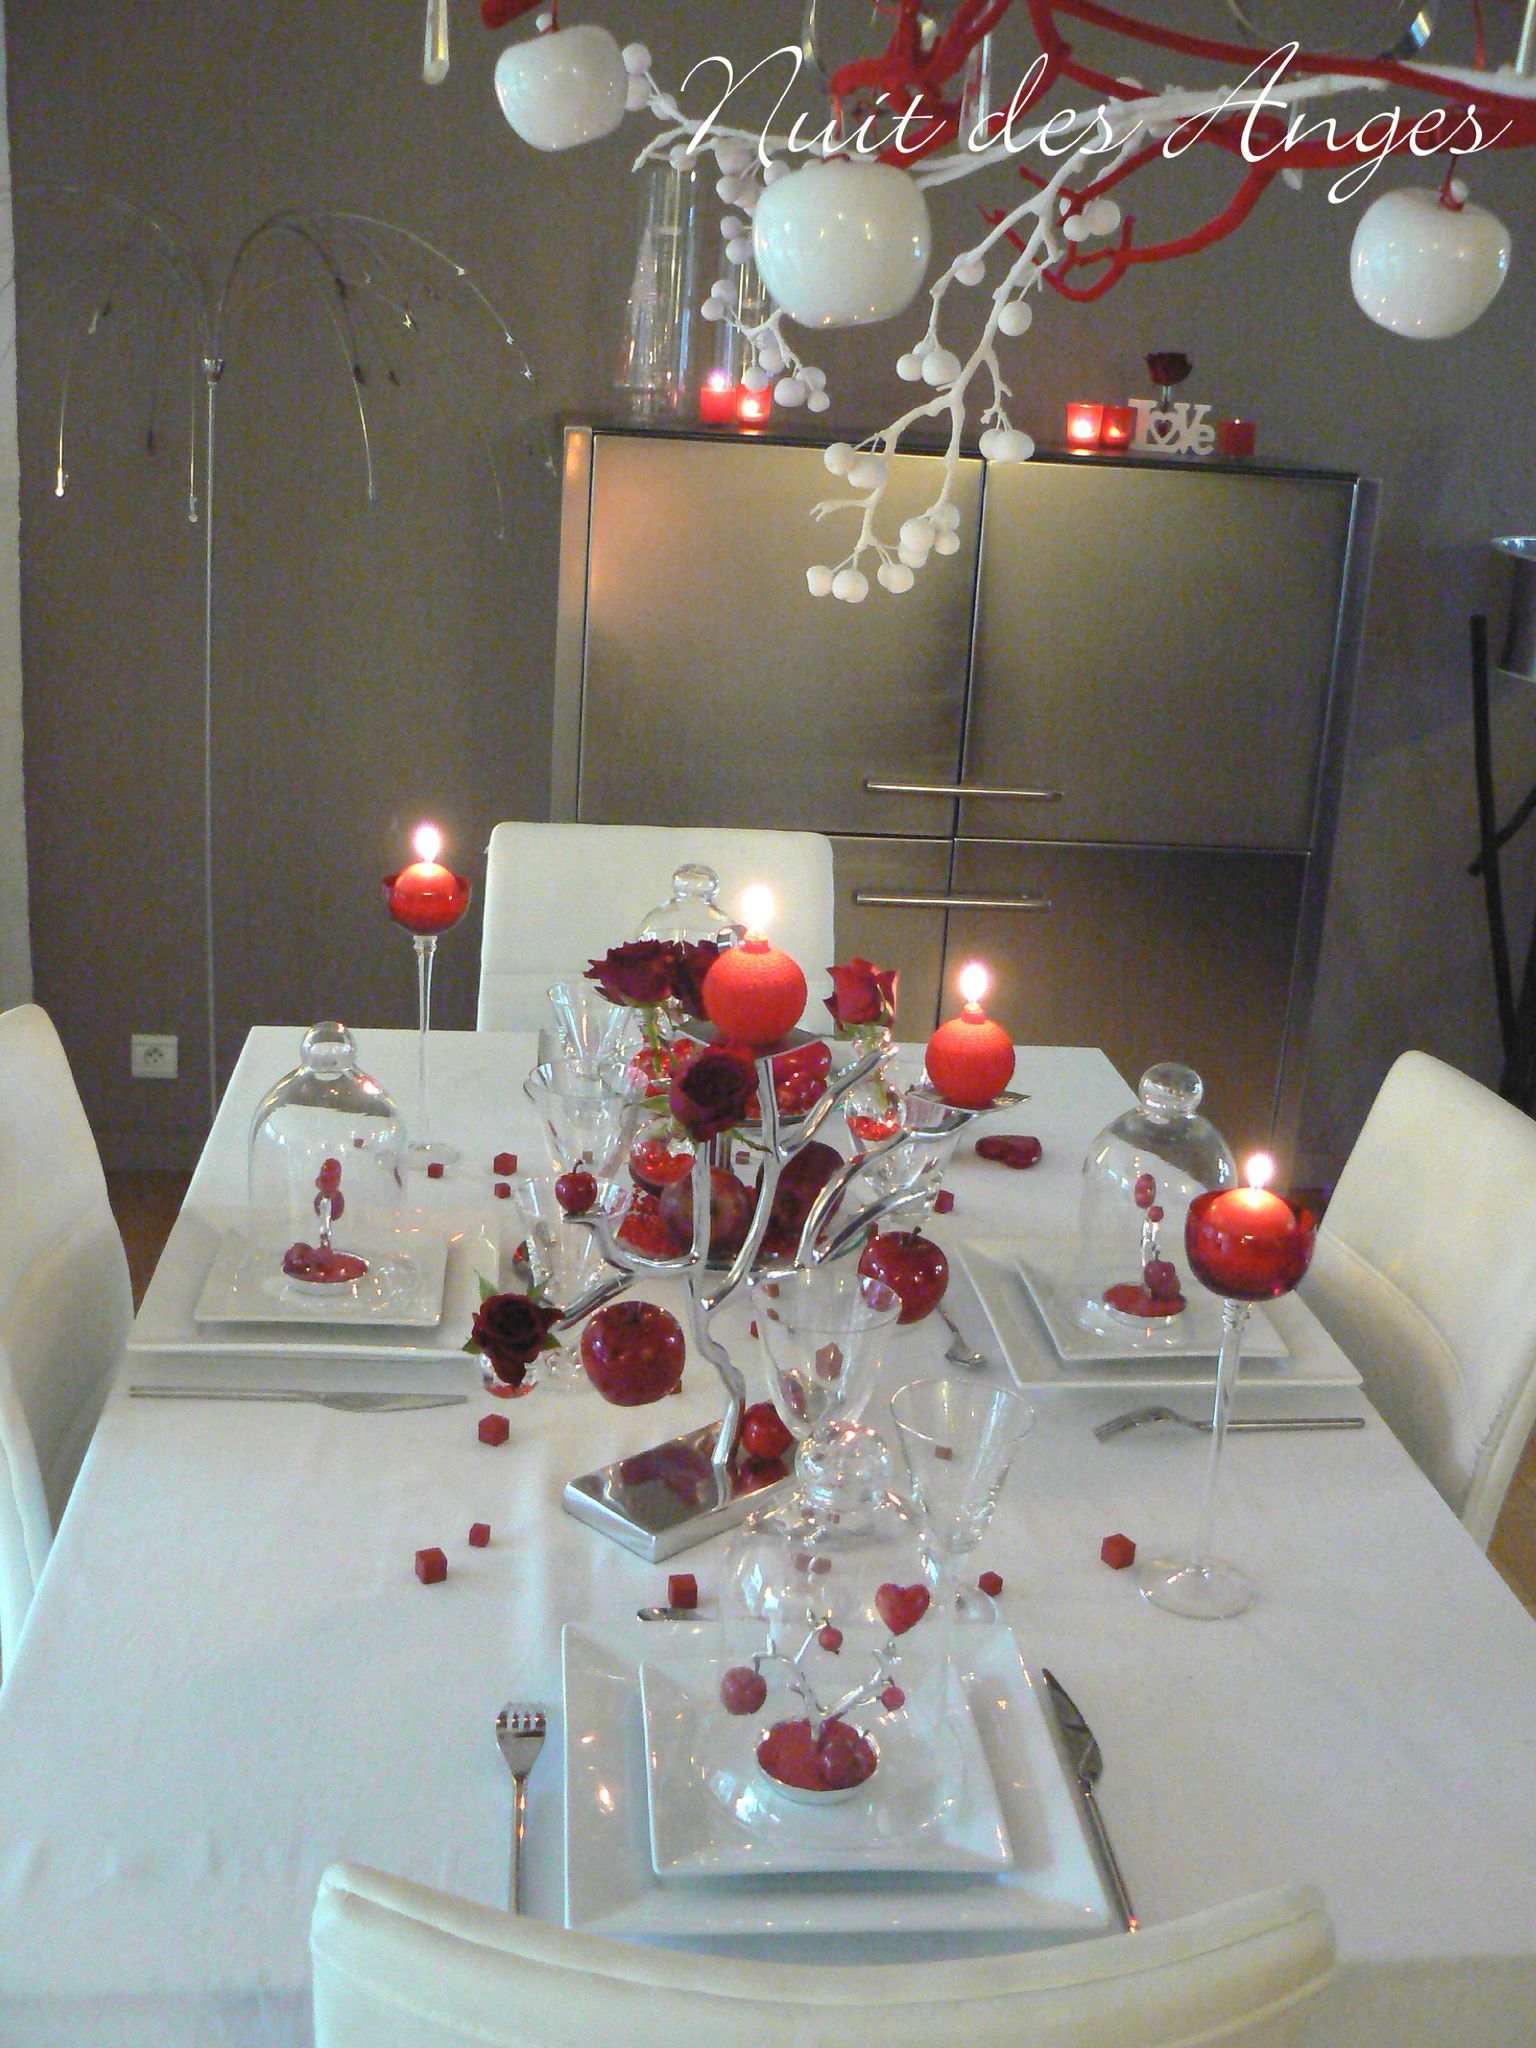 D coration de table rouge pomme d 39 amour nuit des anges for Decoration theme gourmandise